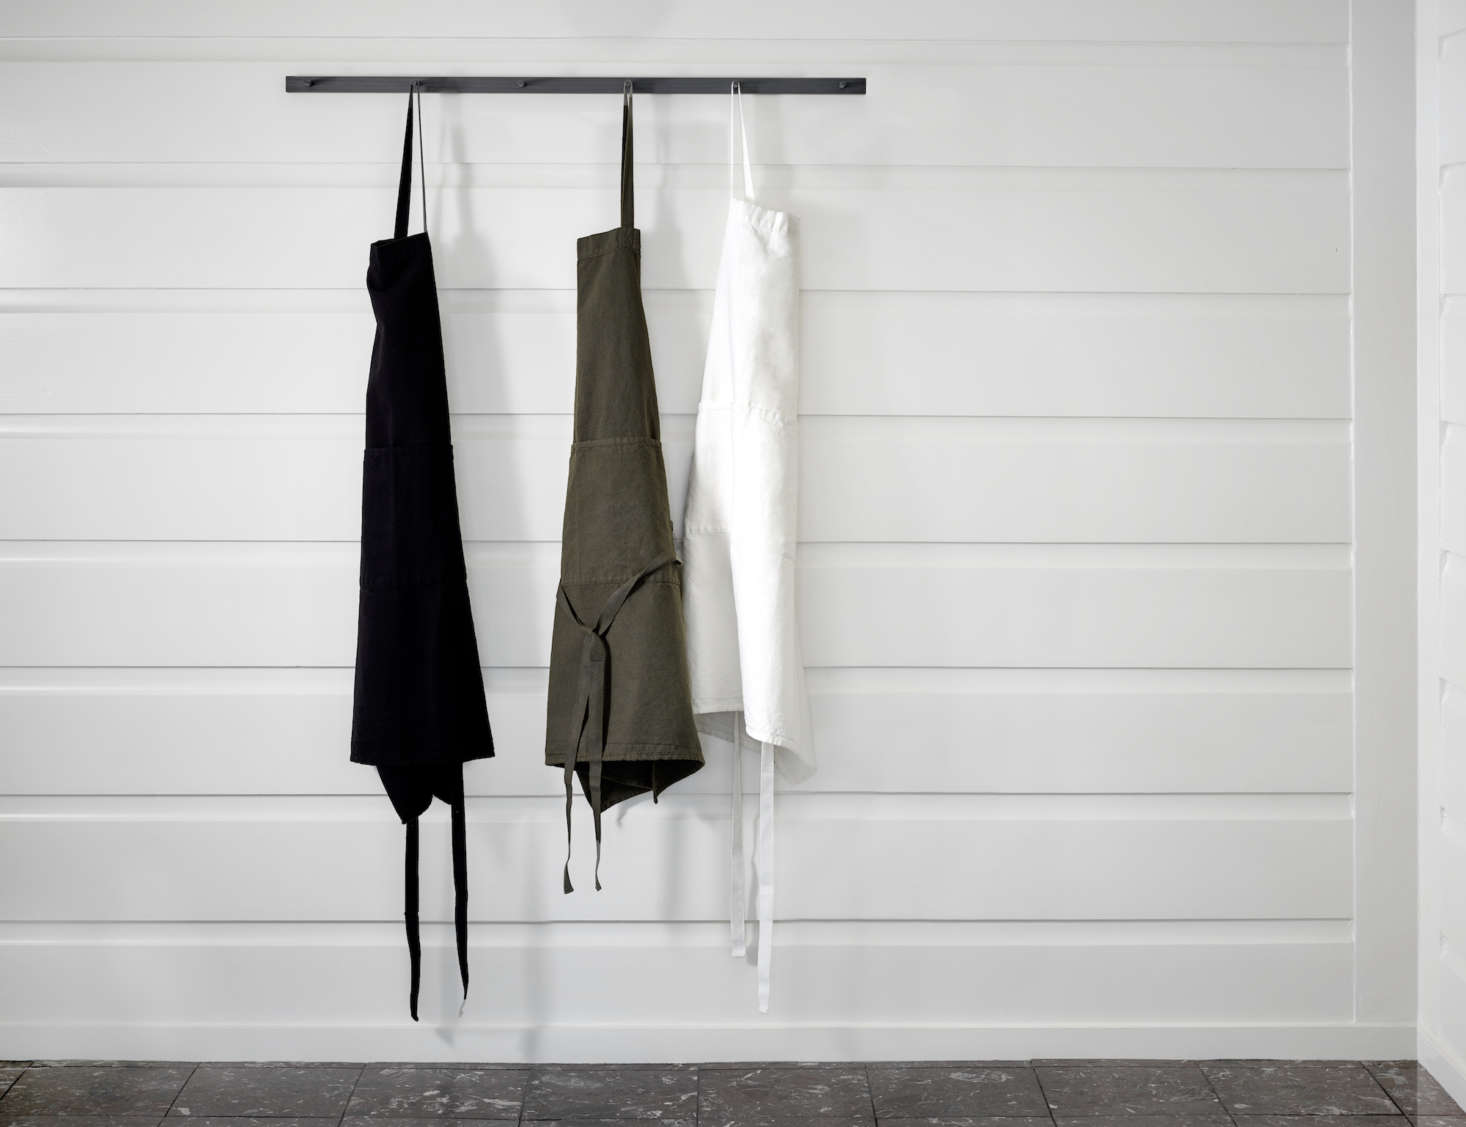 The cotton/linen Apron ($78) is made by Charvet in France and is available in black, ivy, or white.